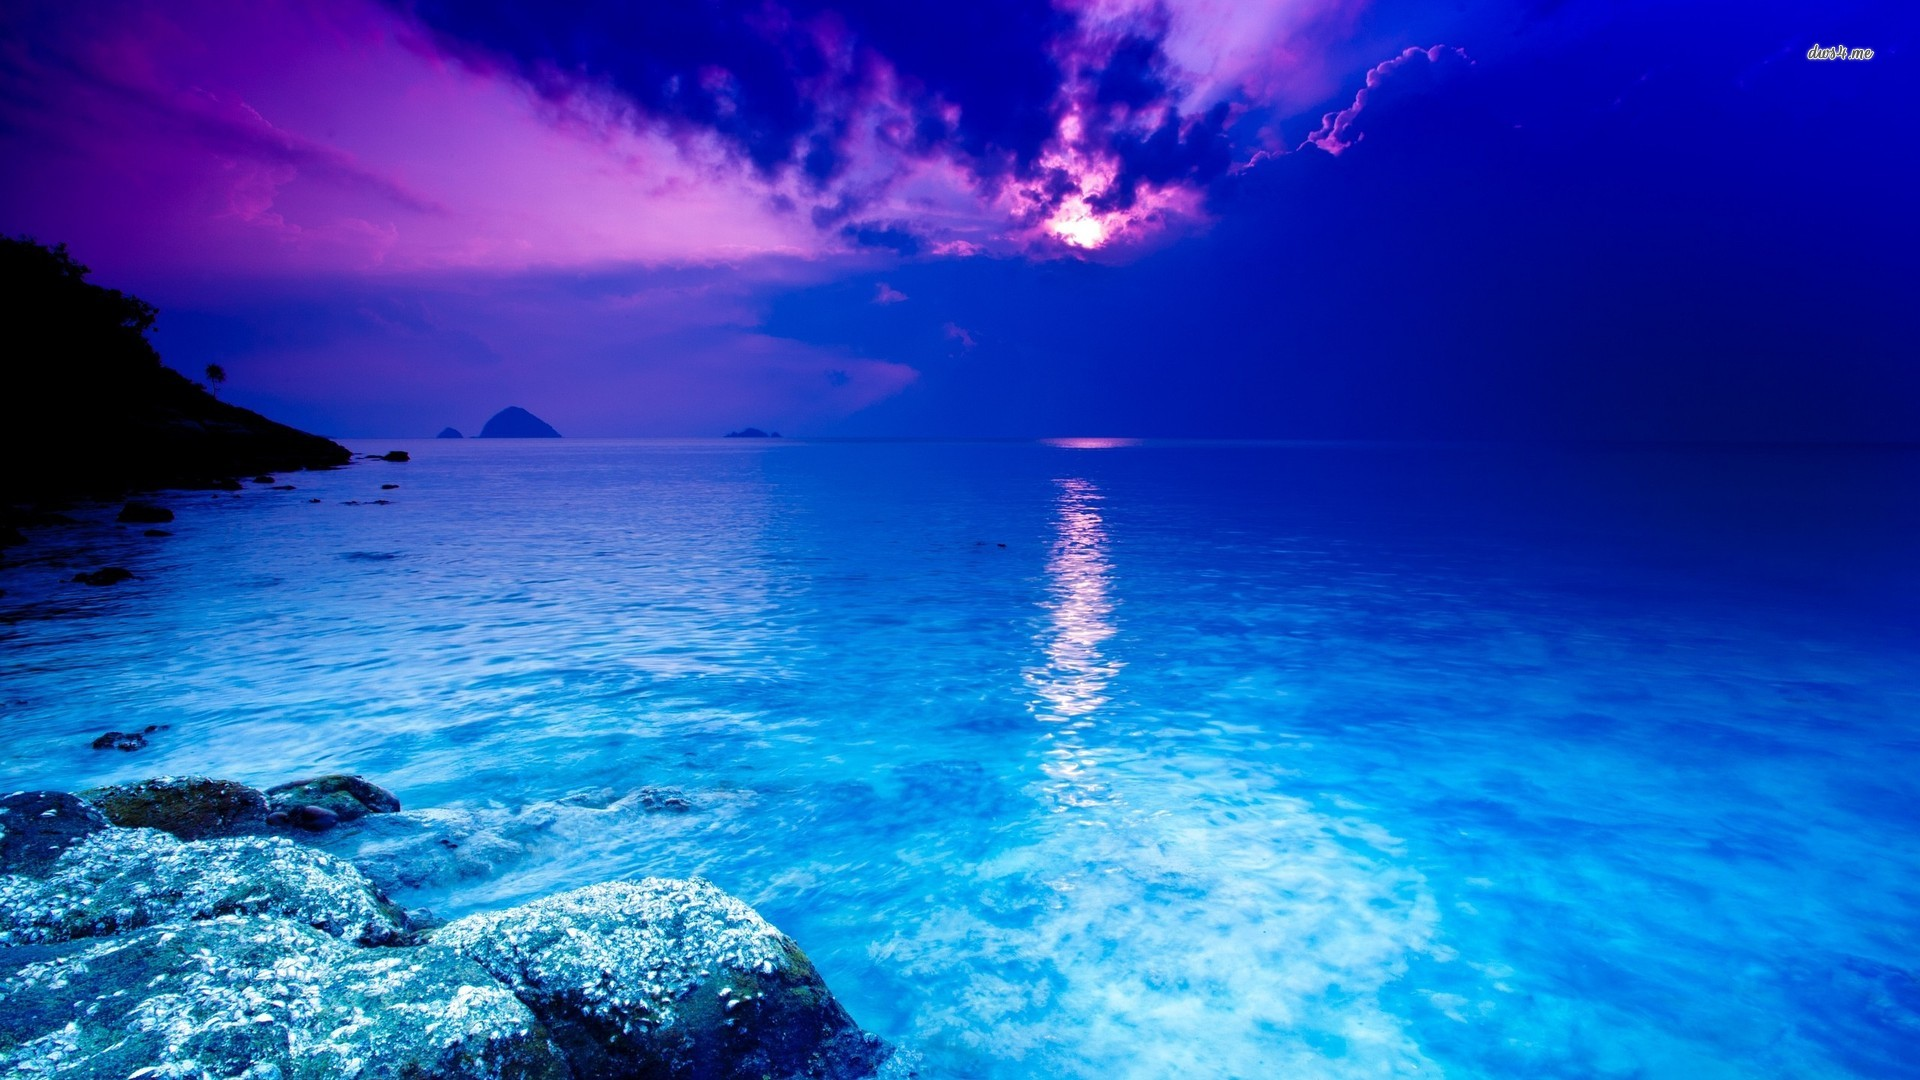 Blue ocean wallpaper   Beach wallpapers   14710 1920x1080